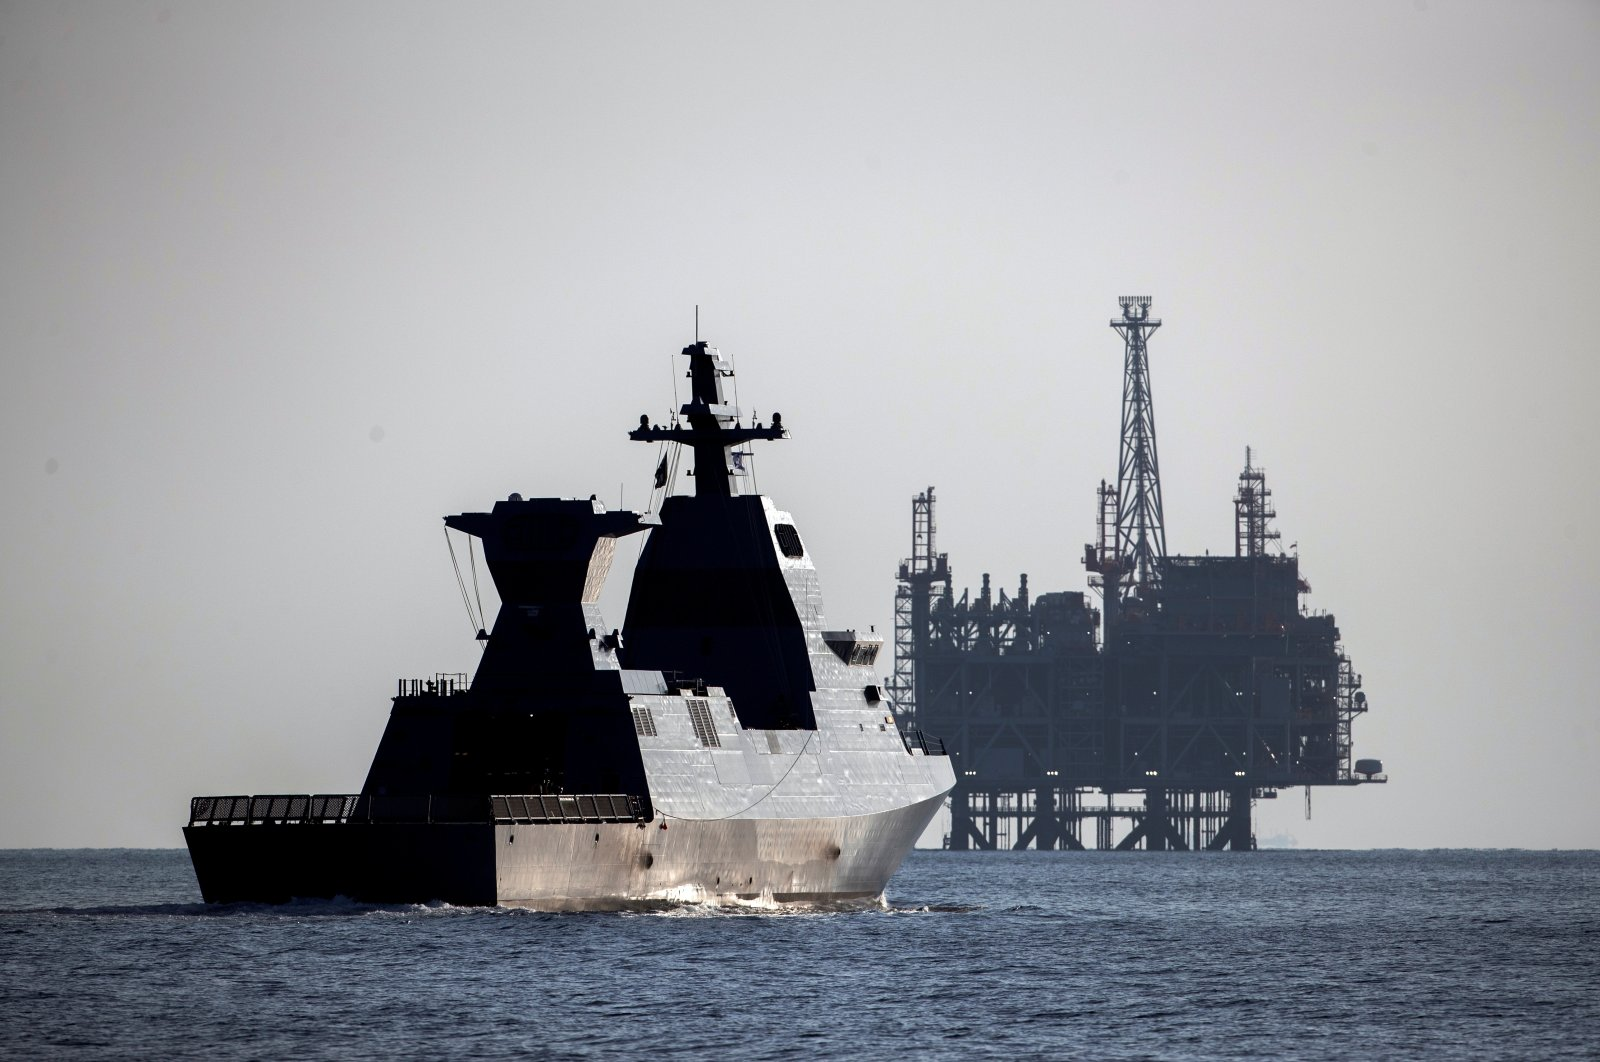 """Israel's Saar-6 corvette, a warship dubbed """"Shield,"""" cruises near the production platform of the Leviathan natural gas field after a welcoming ceremony by the Israeli navy marking its arrival in the Mediterranean Sea off the coast of Haifa, northern Israel, Dec. 1, 2020. (Reuters Photo)"""